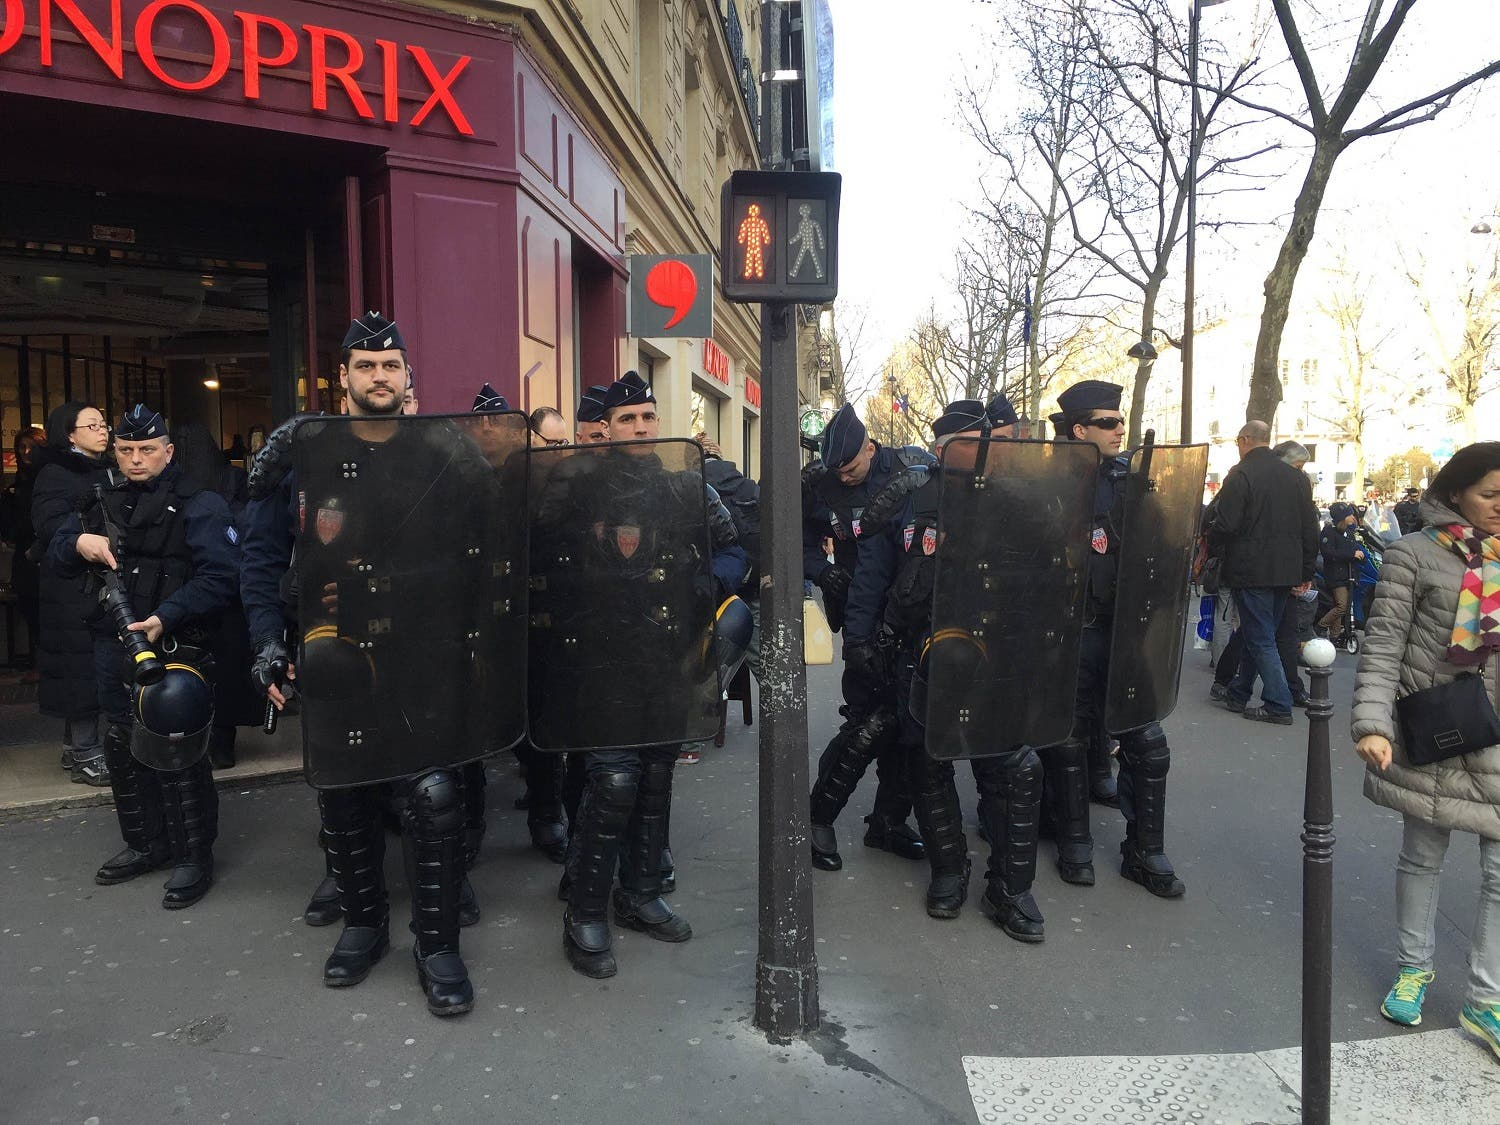 Paris police watch on as protesters take part in anti state of emergency demonstrations in Paris on Saturday March 12  (Photo: Asma Ajroudi)